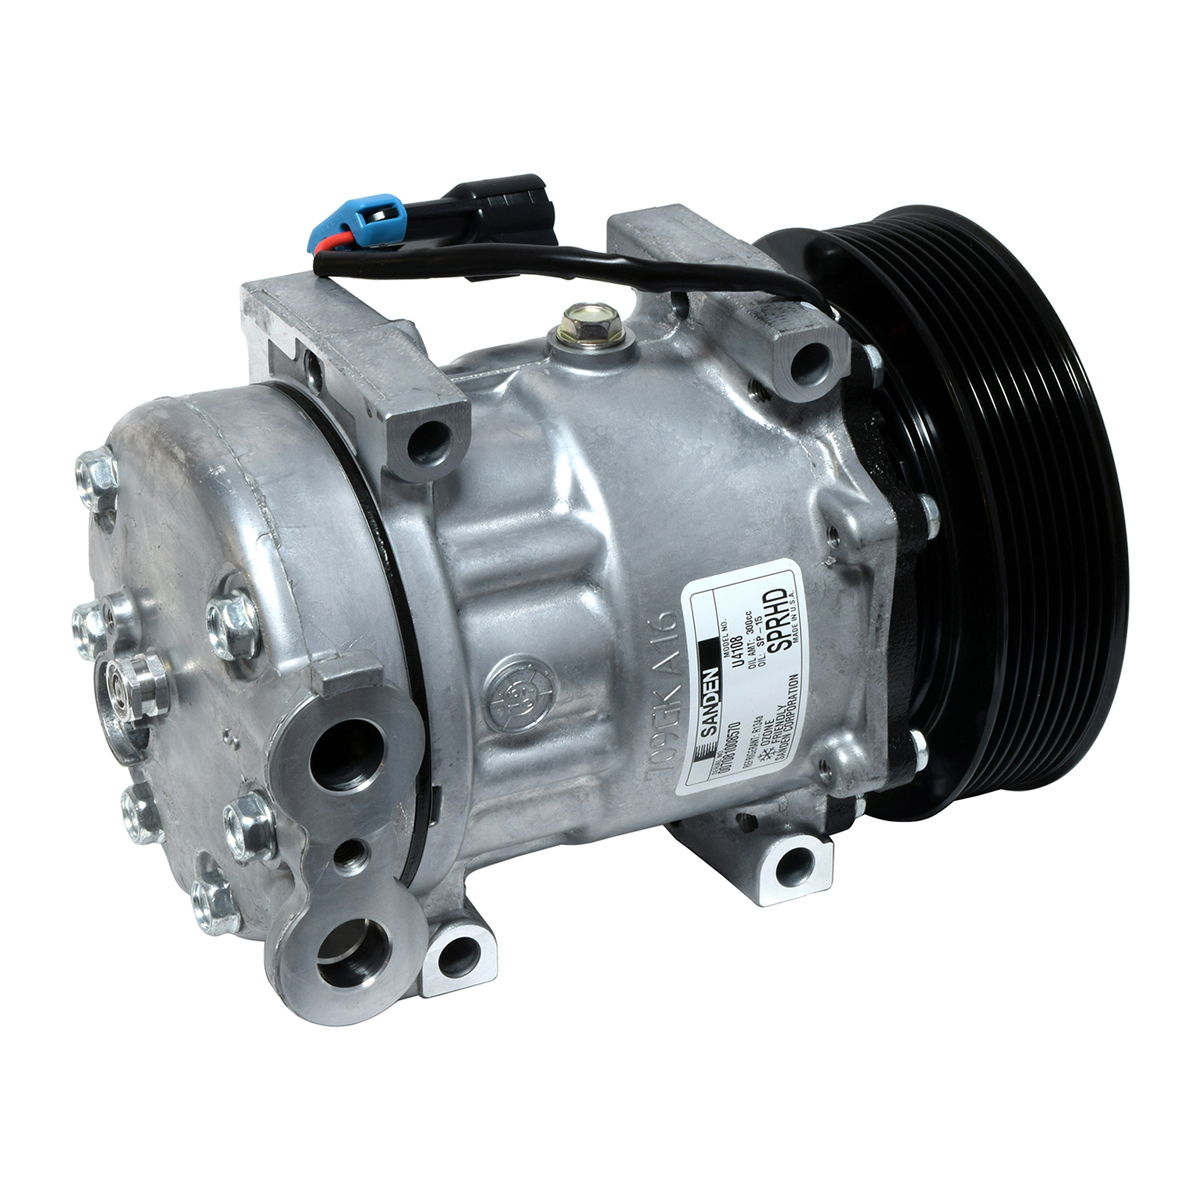 ORIGINAL SANDEN A/C Compressor CO 4108